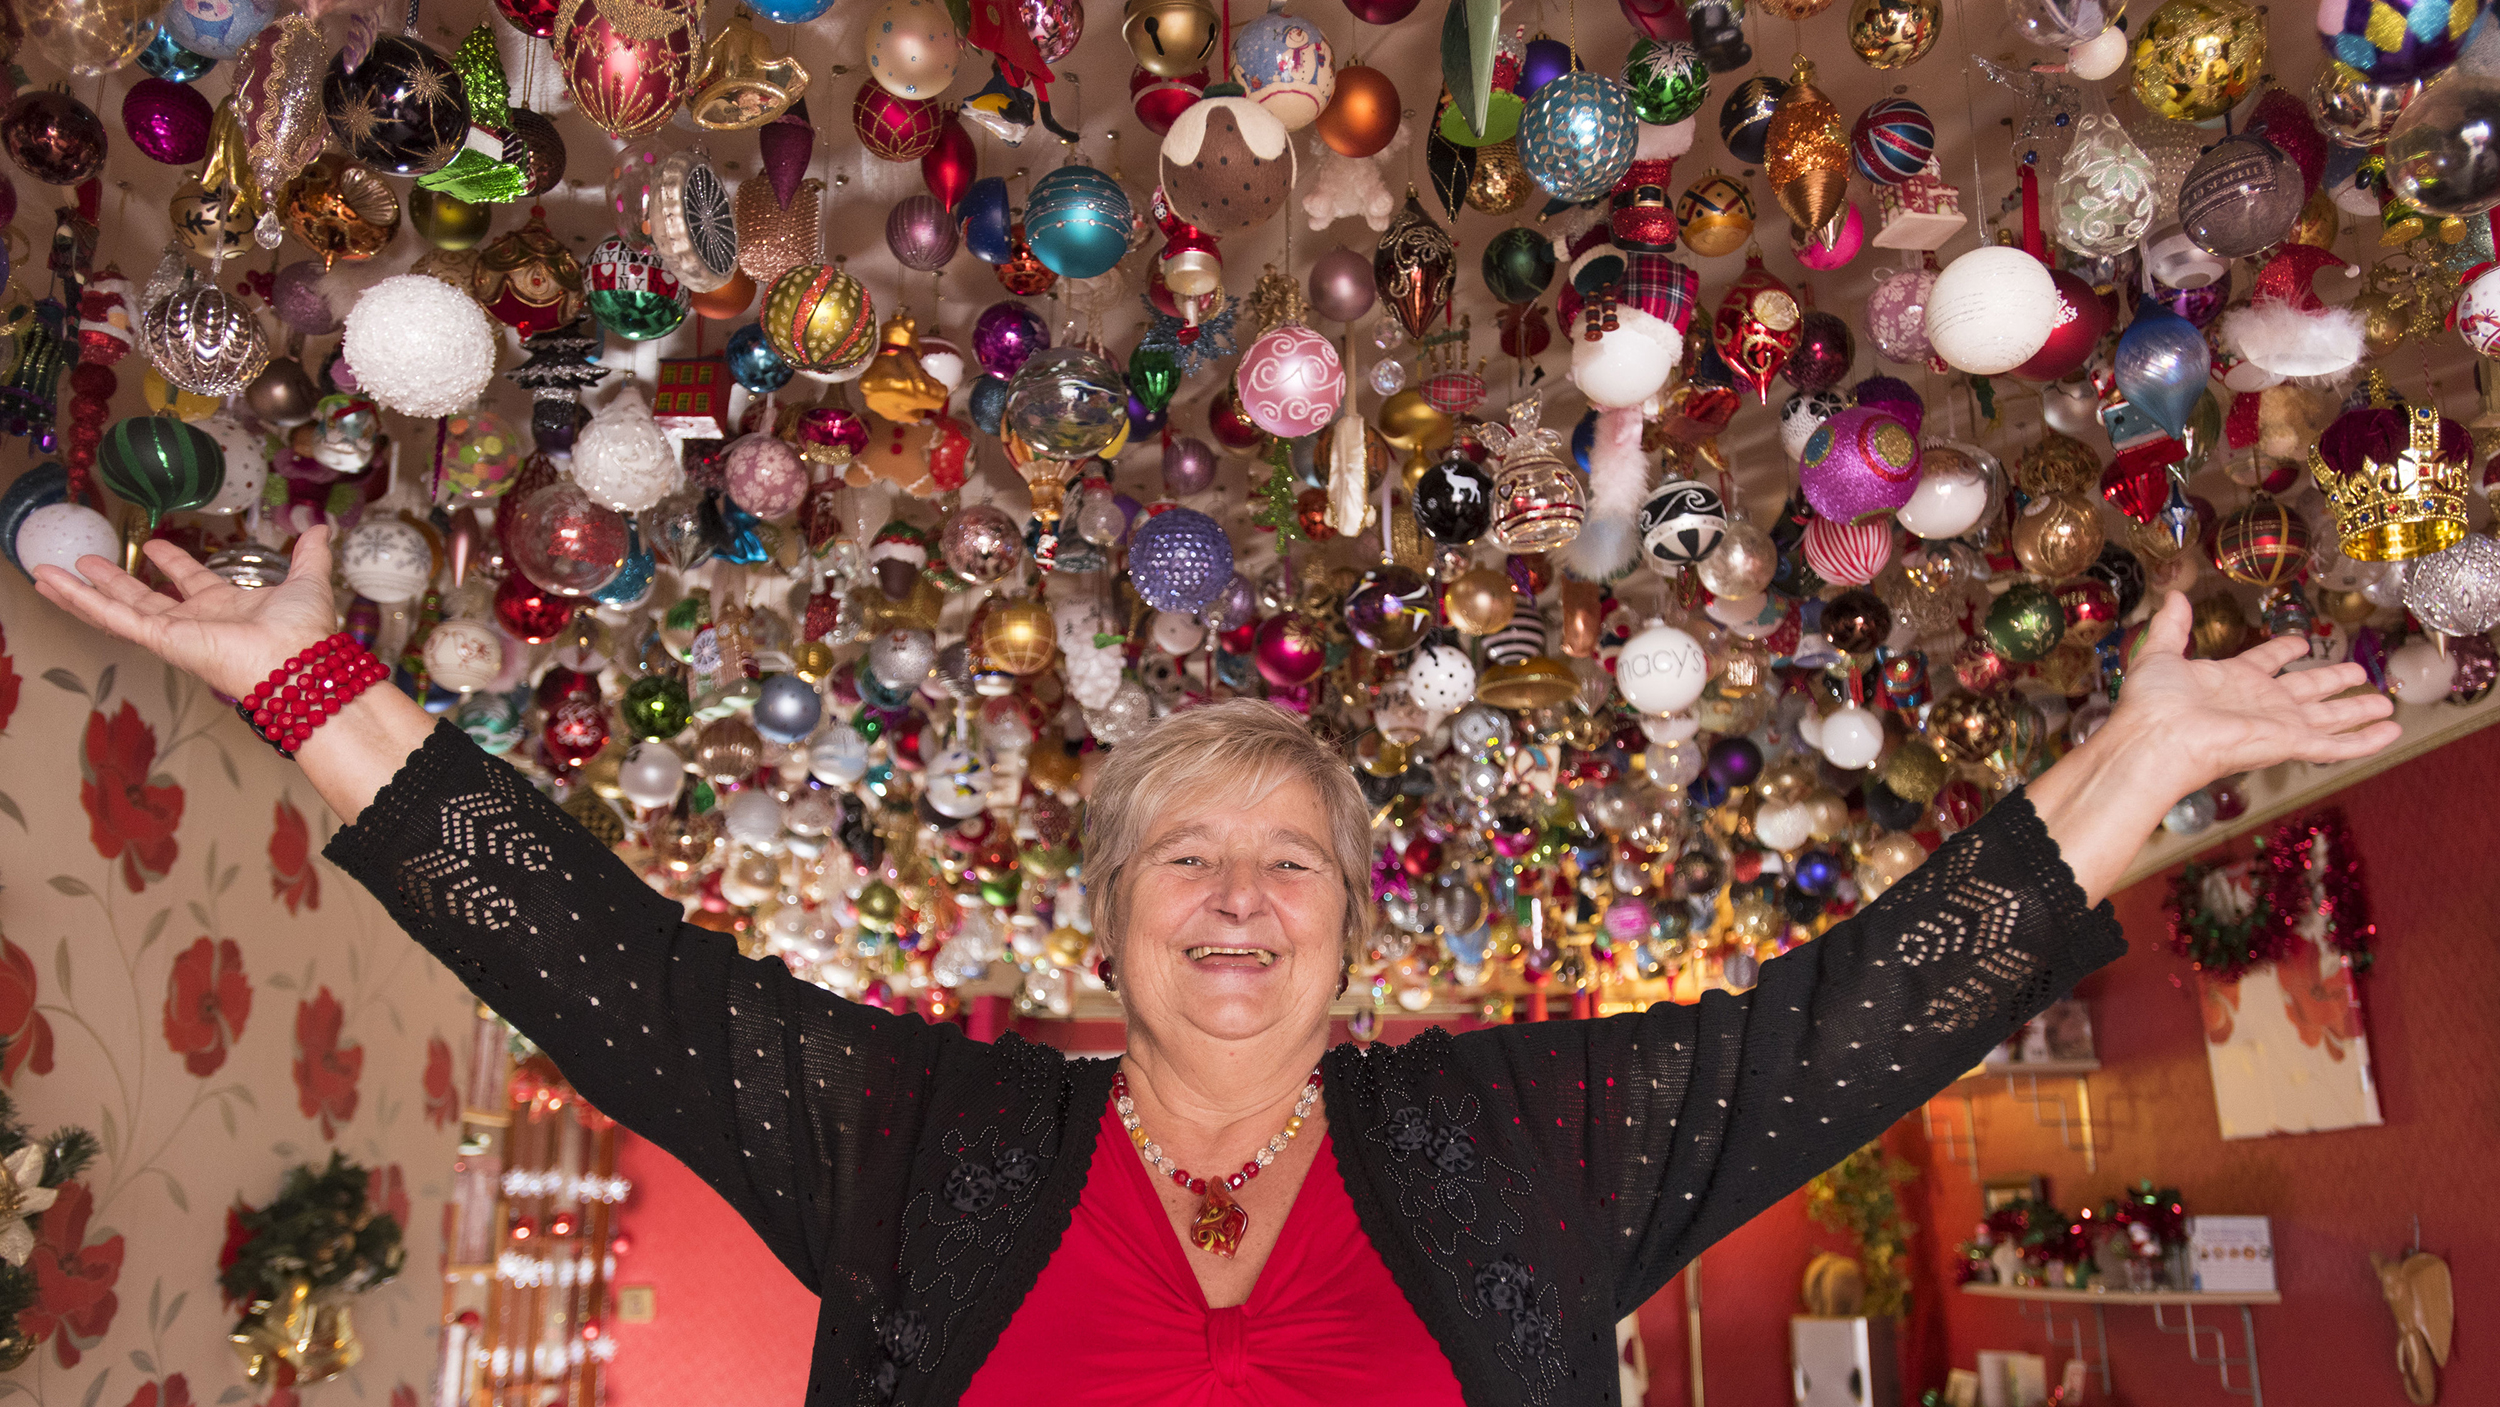 Christmas decorations sylvia pope decorates home with